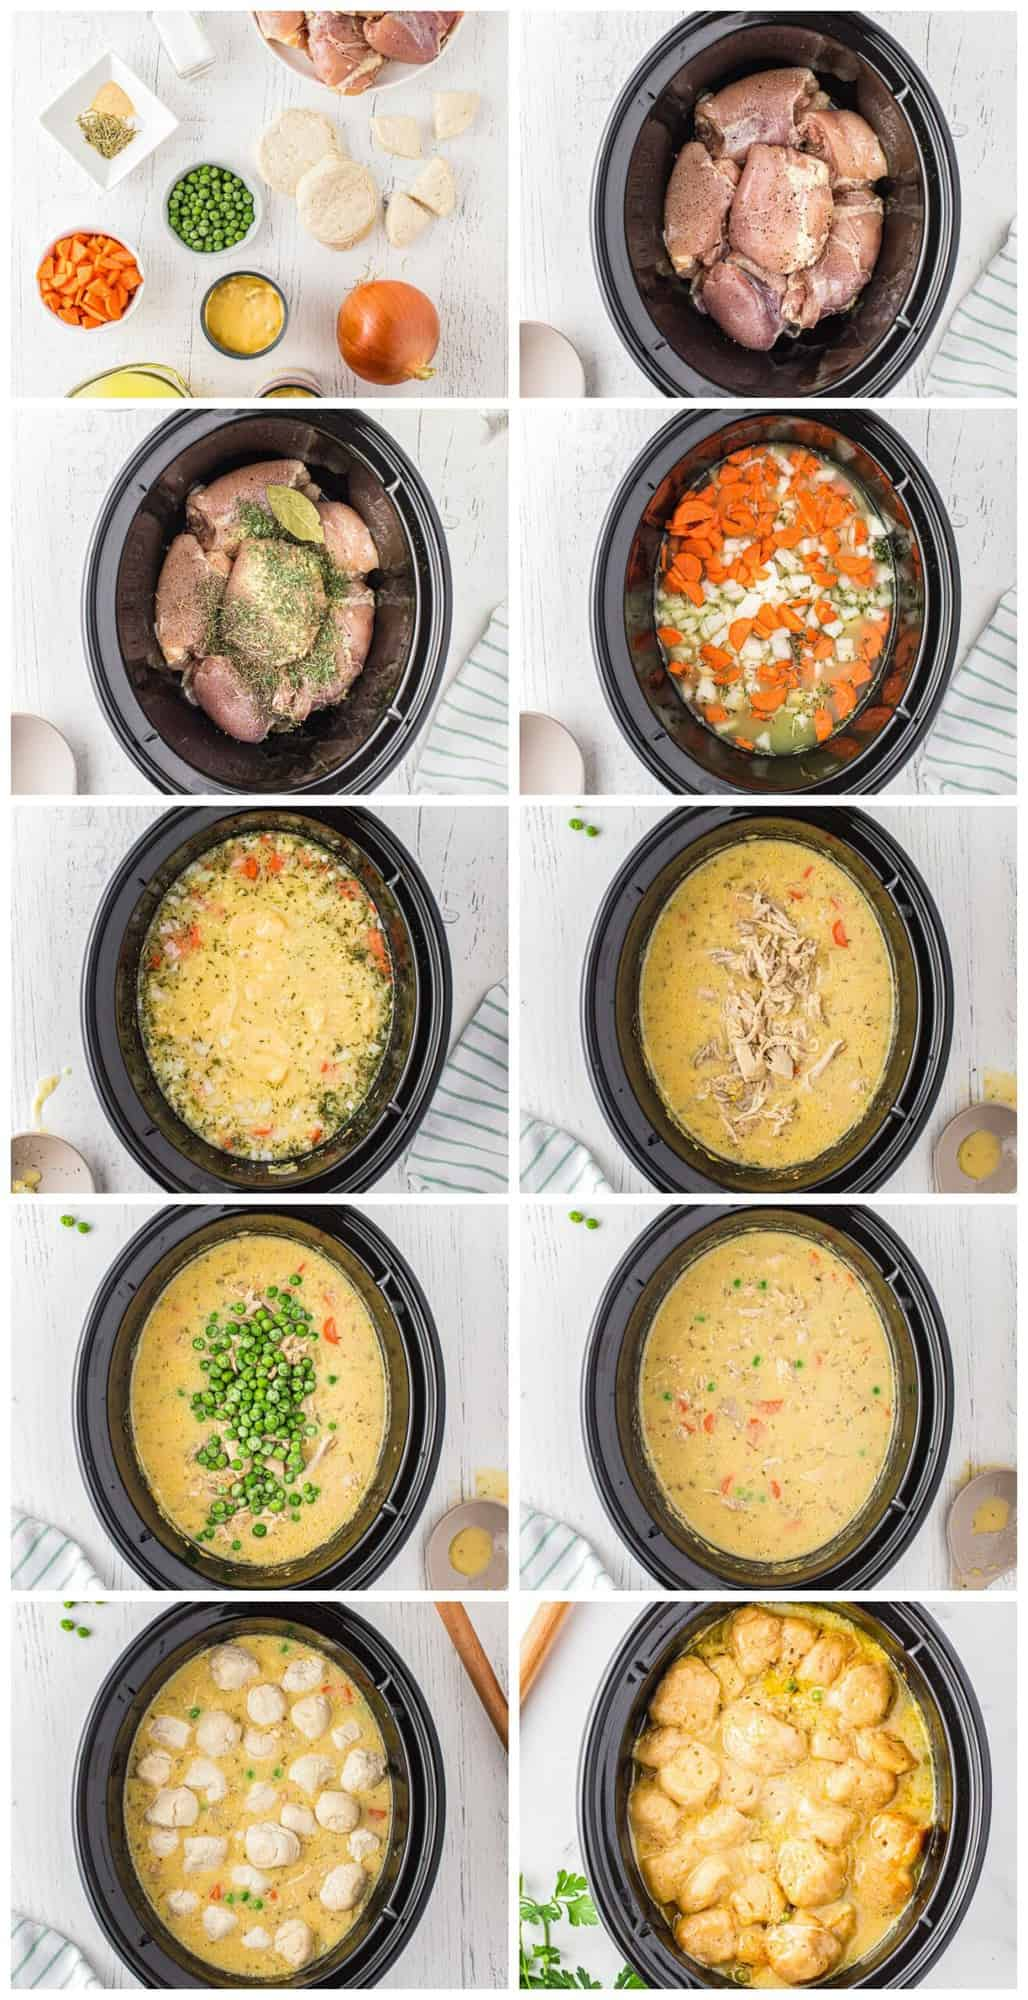 step by step photos of how to make crockpot chicken and dumplings